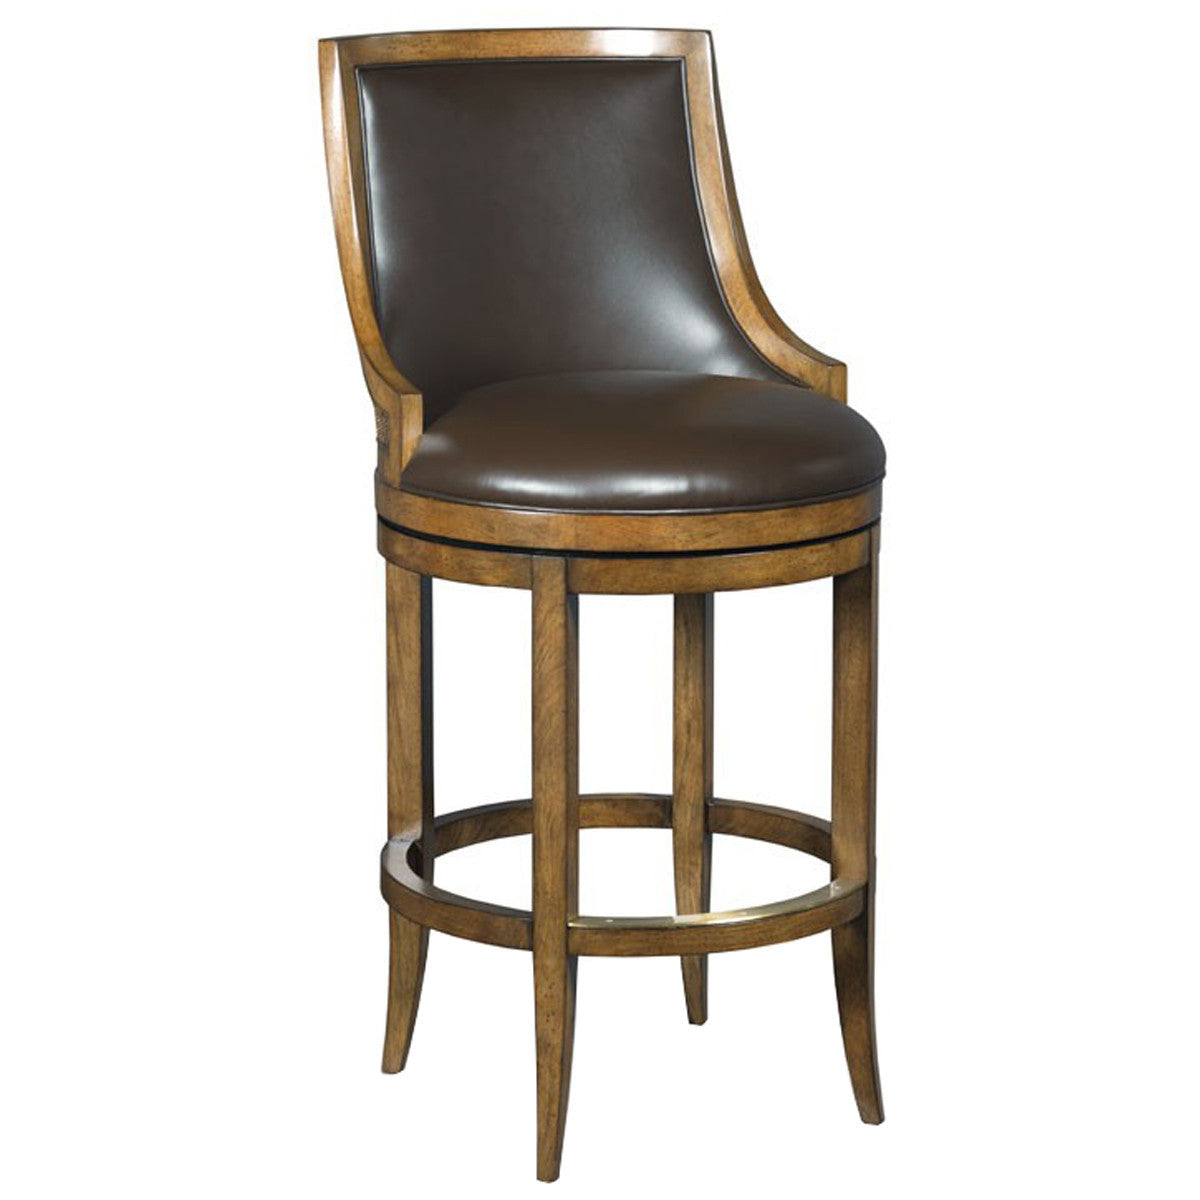 woodbridge furniture redding bar stool stools benjamin